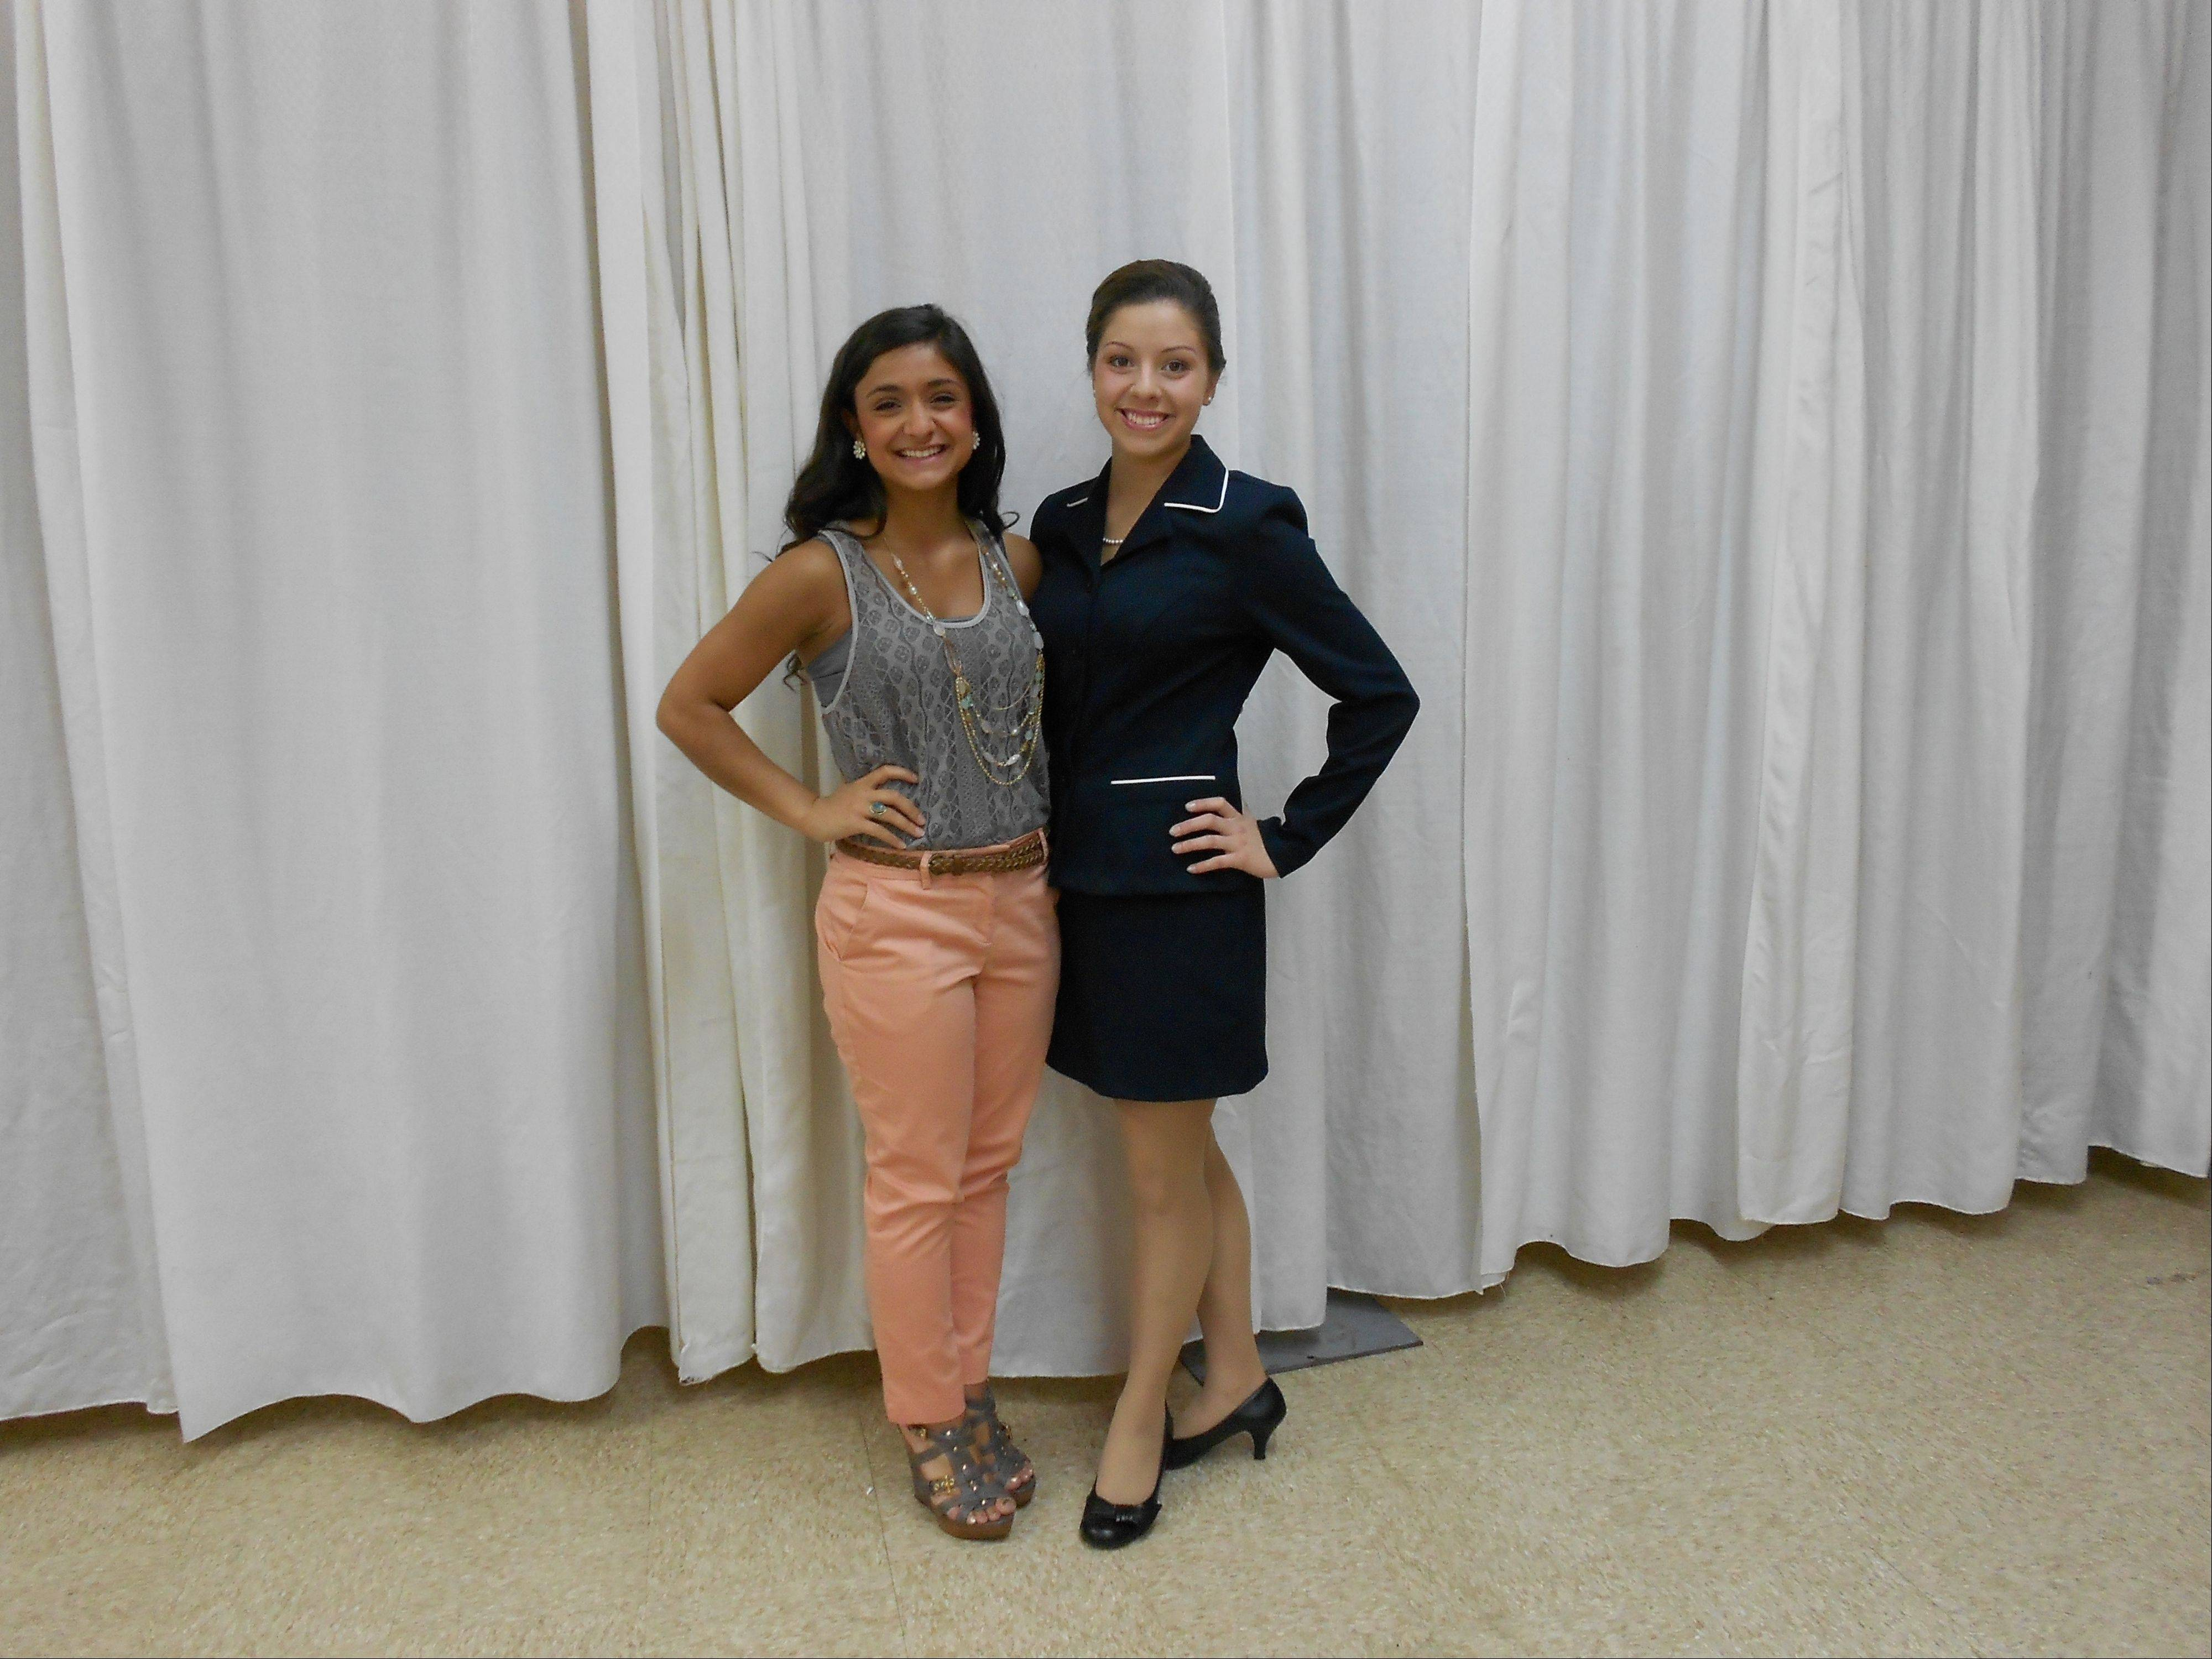 Guest speakers at the Girls State May orientation were Sabrina DiMaso and Tajari Lester. They spoke and answered questions on their experiences under the direction of the ALA 10th District Chairman Roselle Kwak.